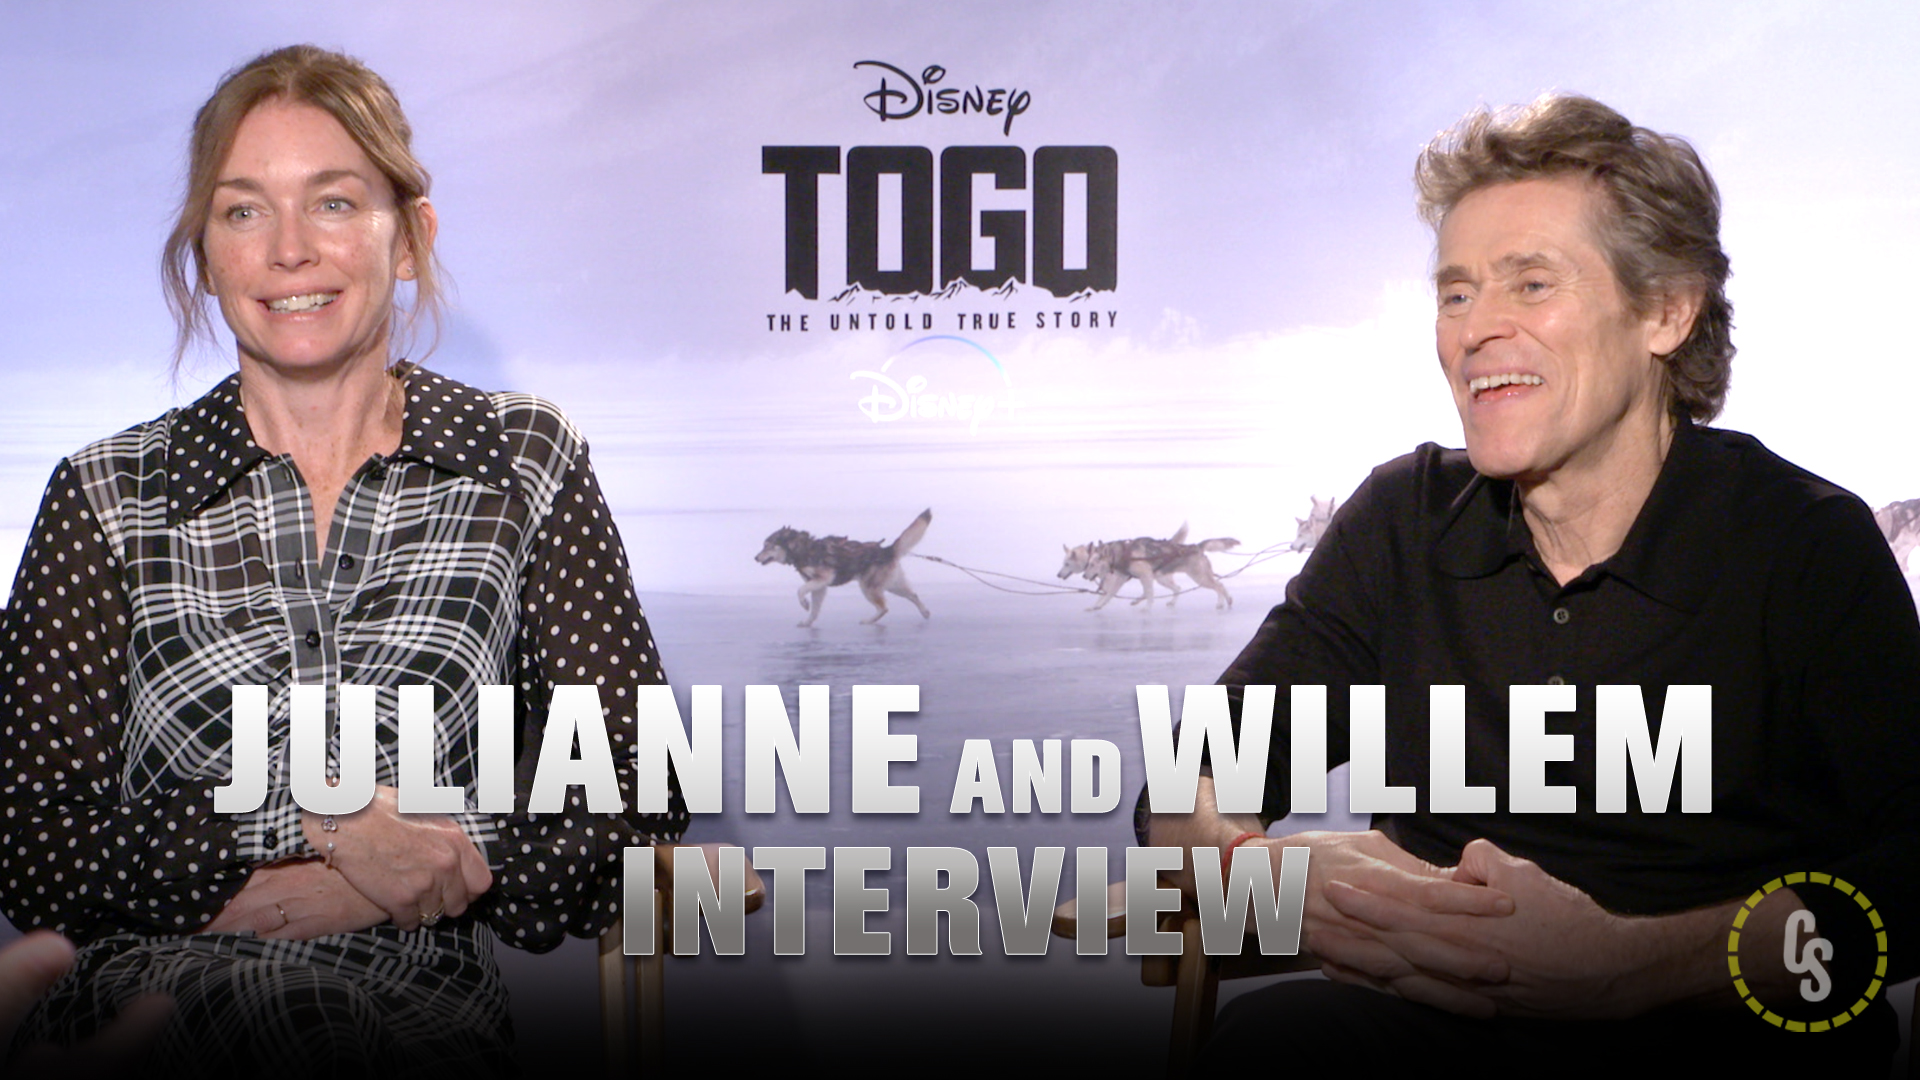 CS Video: Julianne Nicholson & Willem Dafoe on Disney's Togo